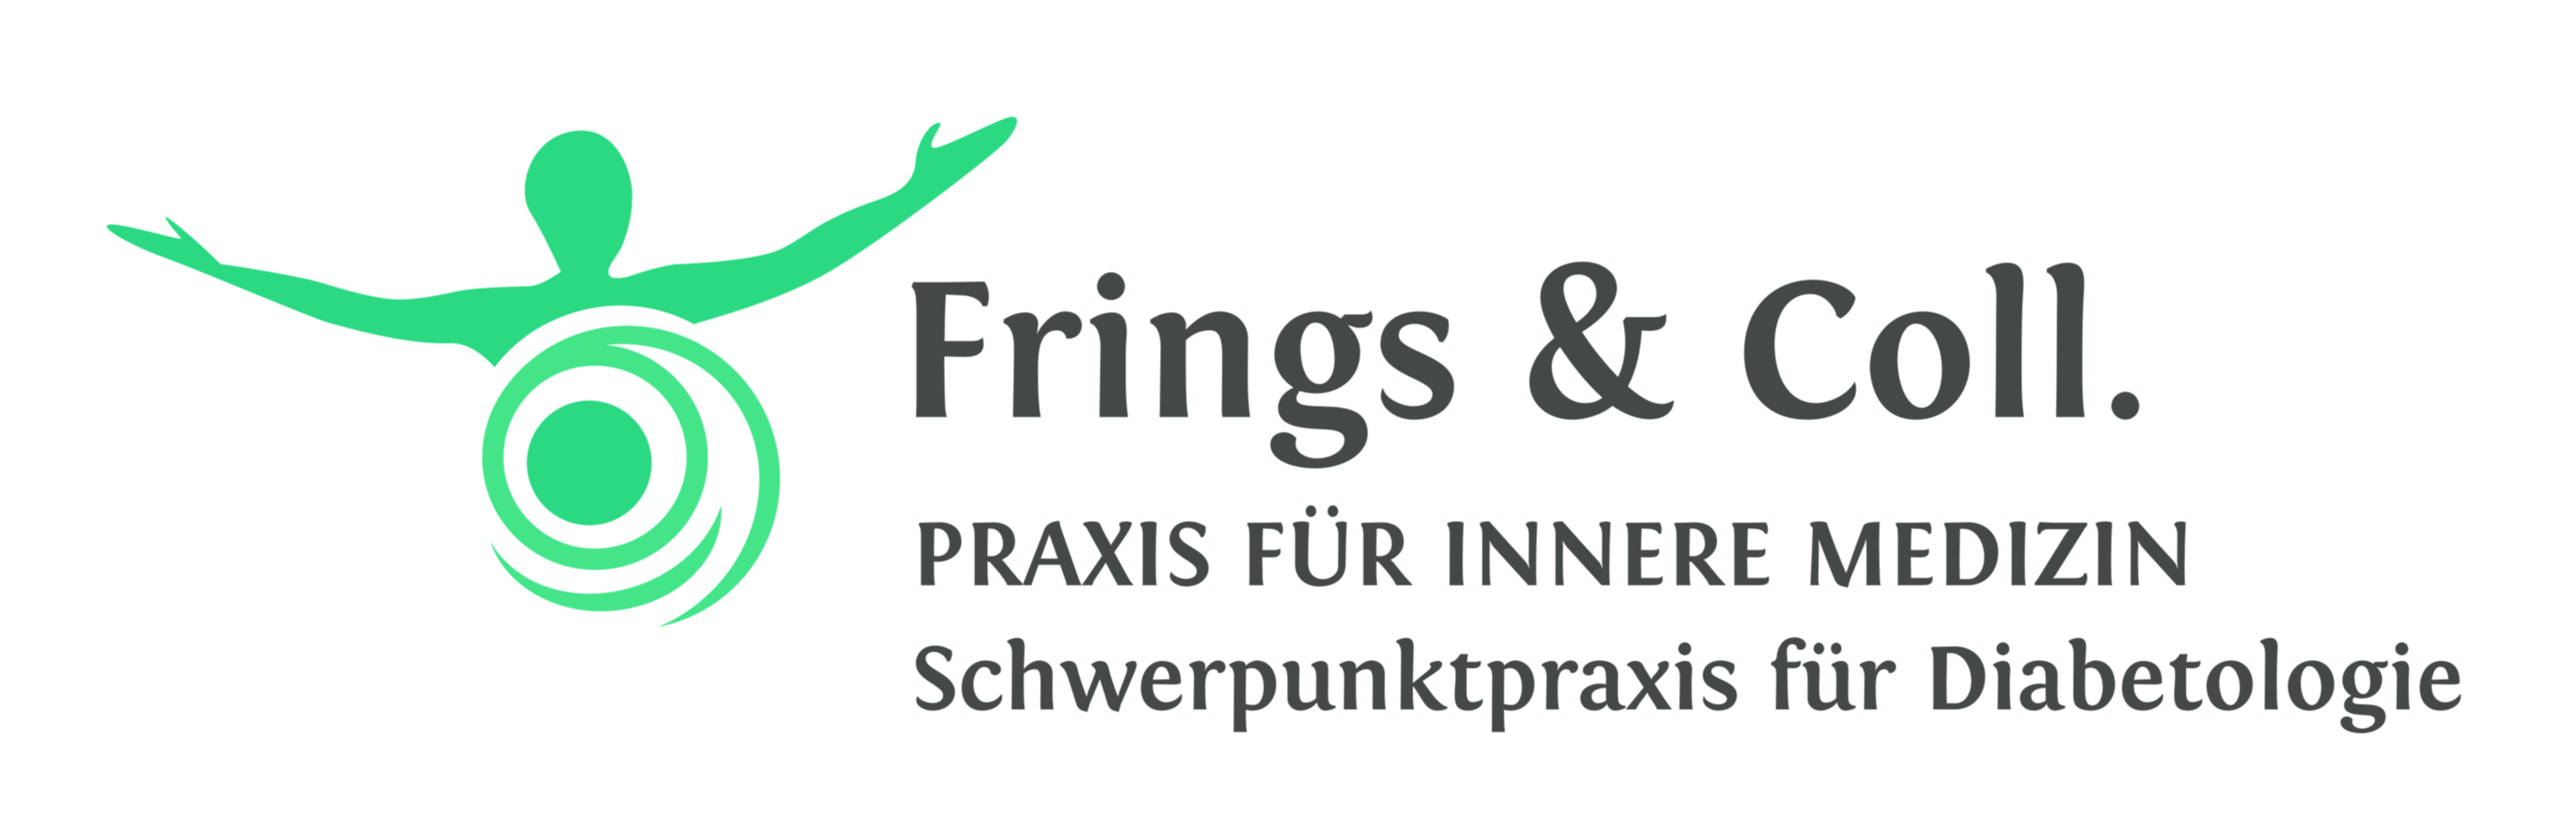 Praxis Dr. Frings & Coll.